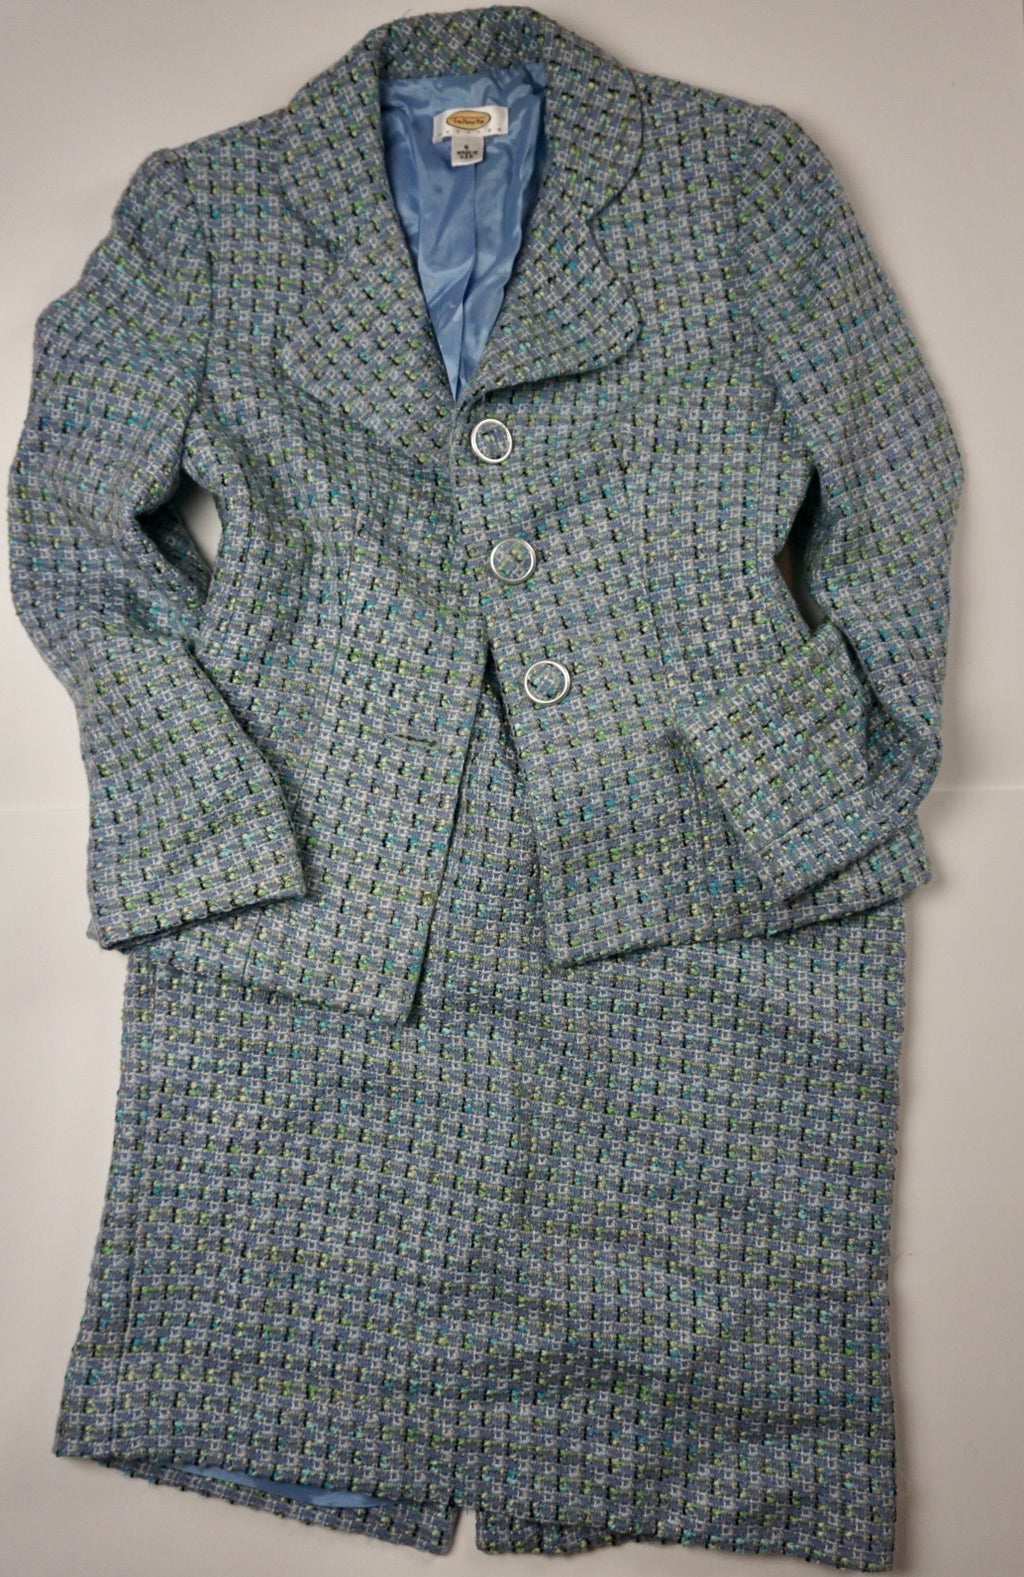 BLUE GREEN TWEED SUIT